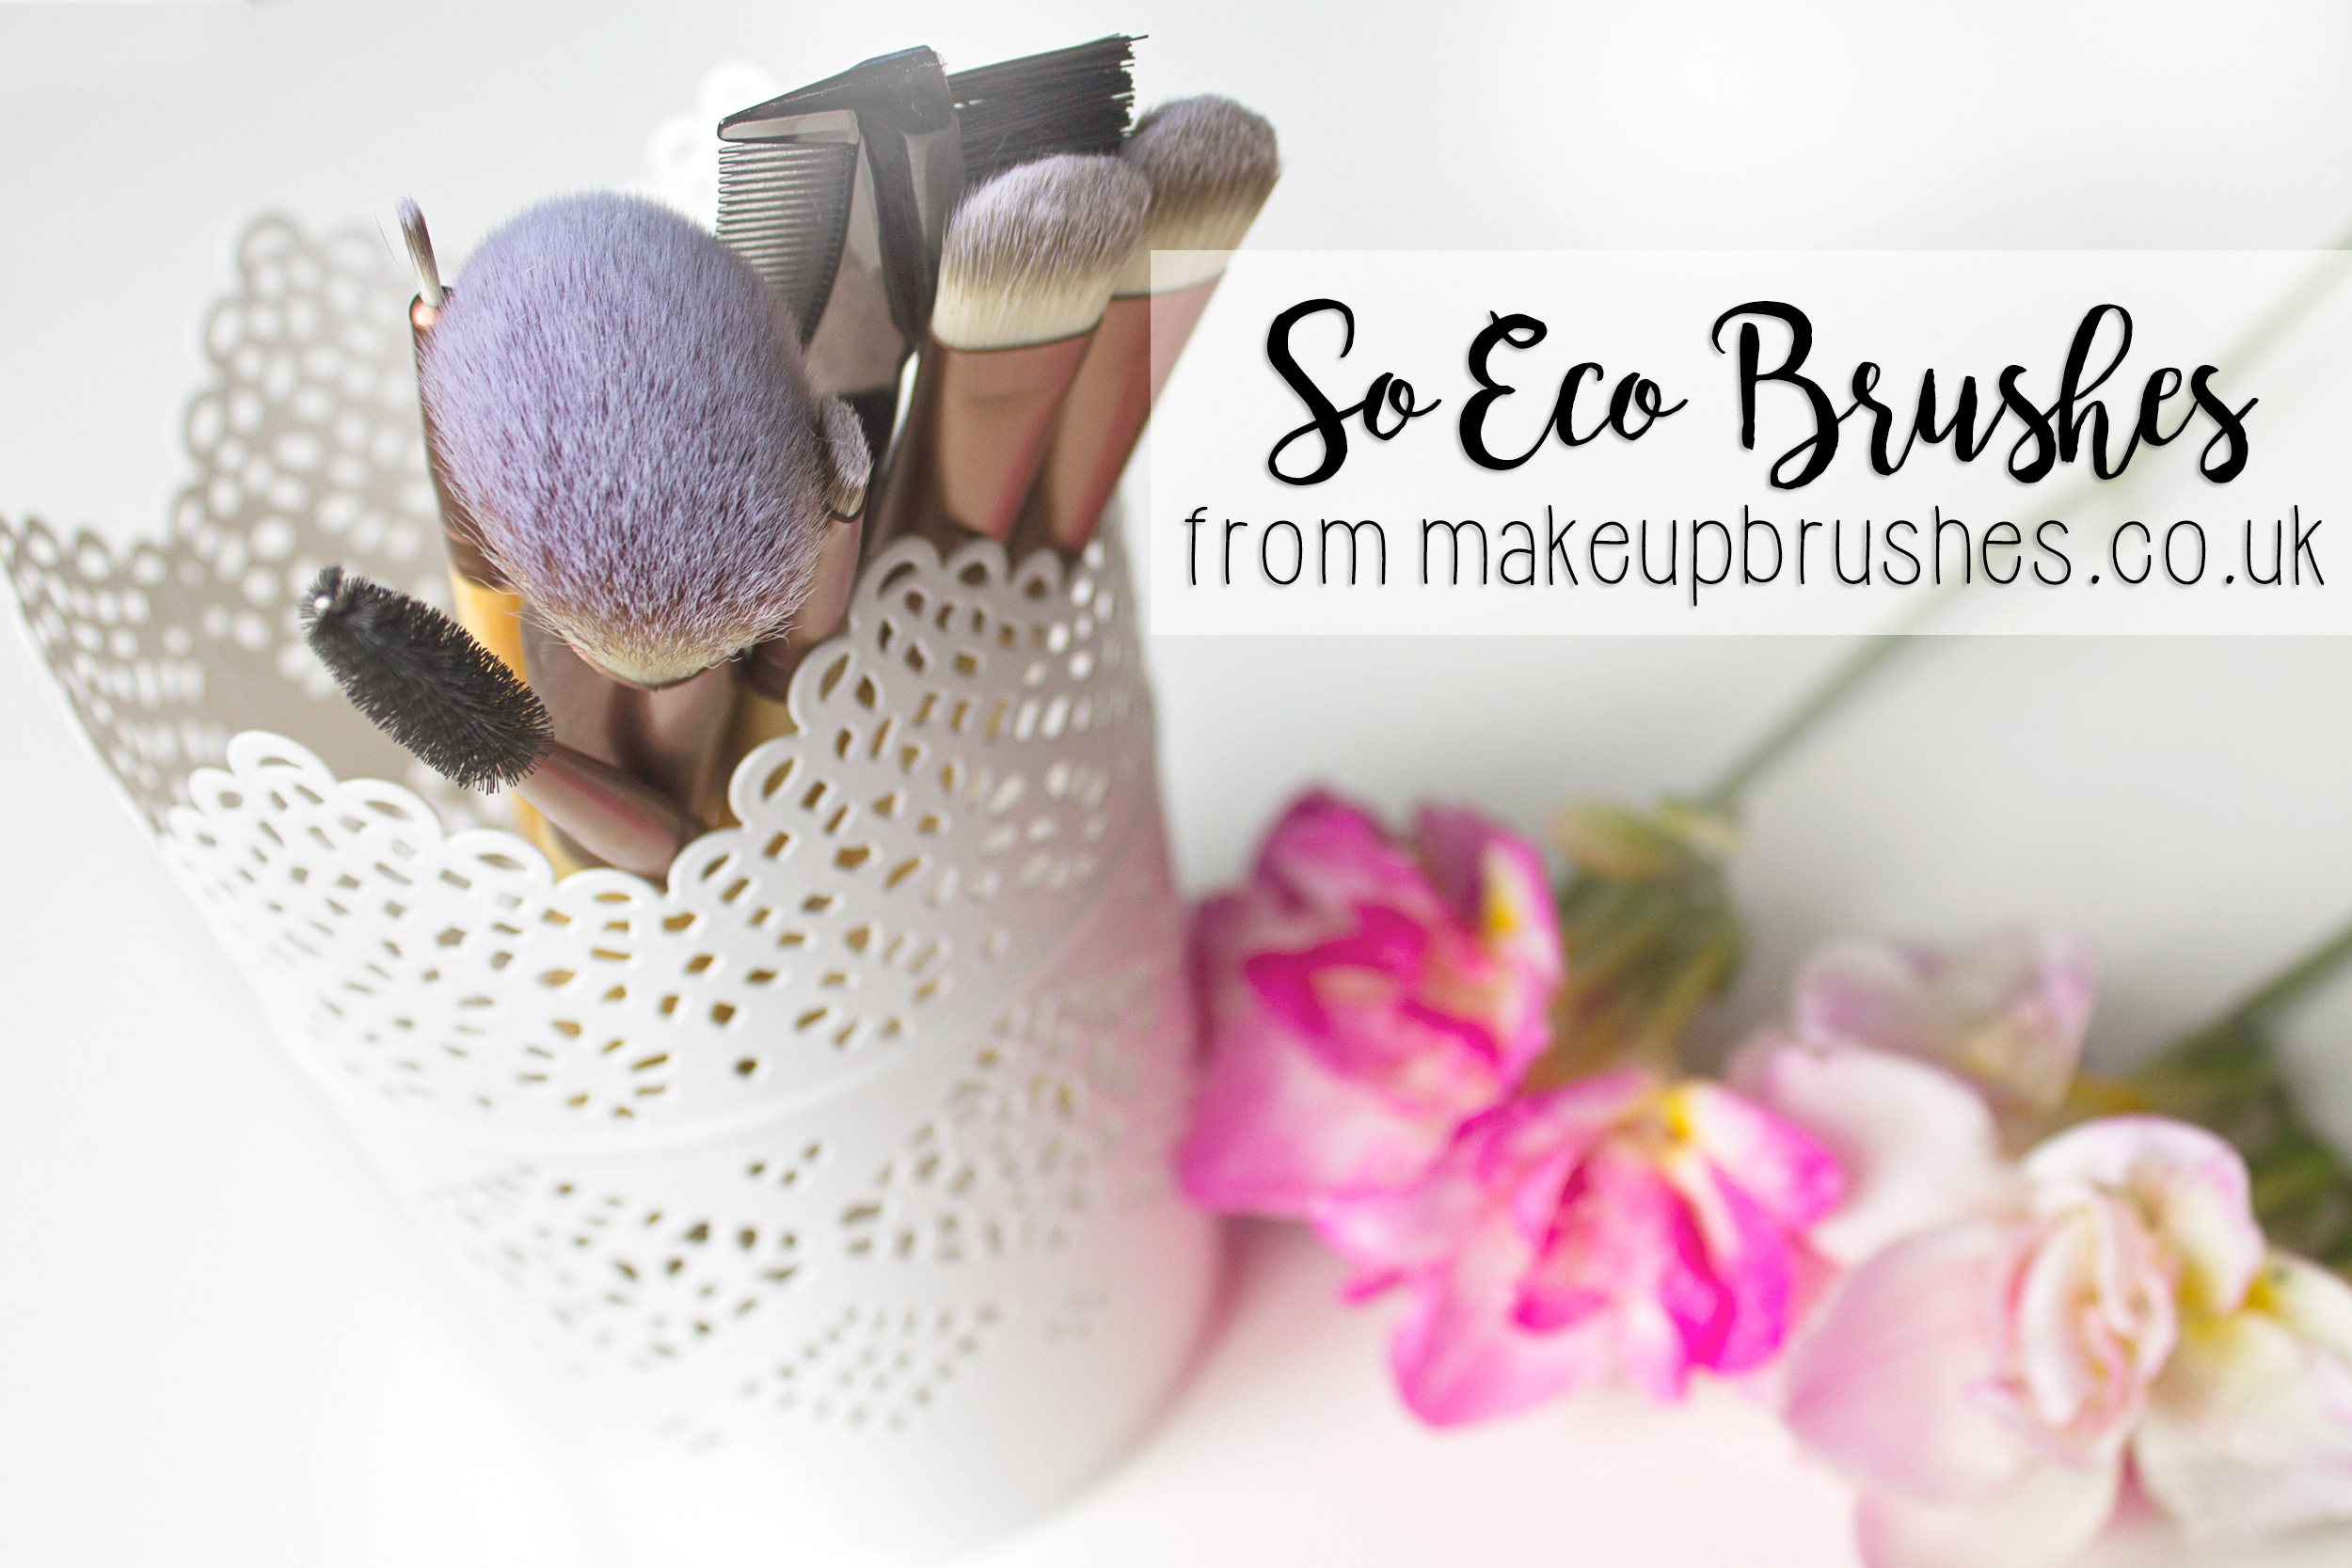 So Eco Makeup Brushes from Makeupbrushes.co.uk* | Review